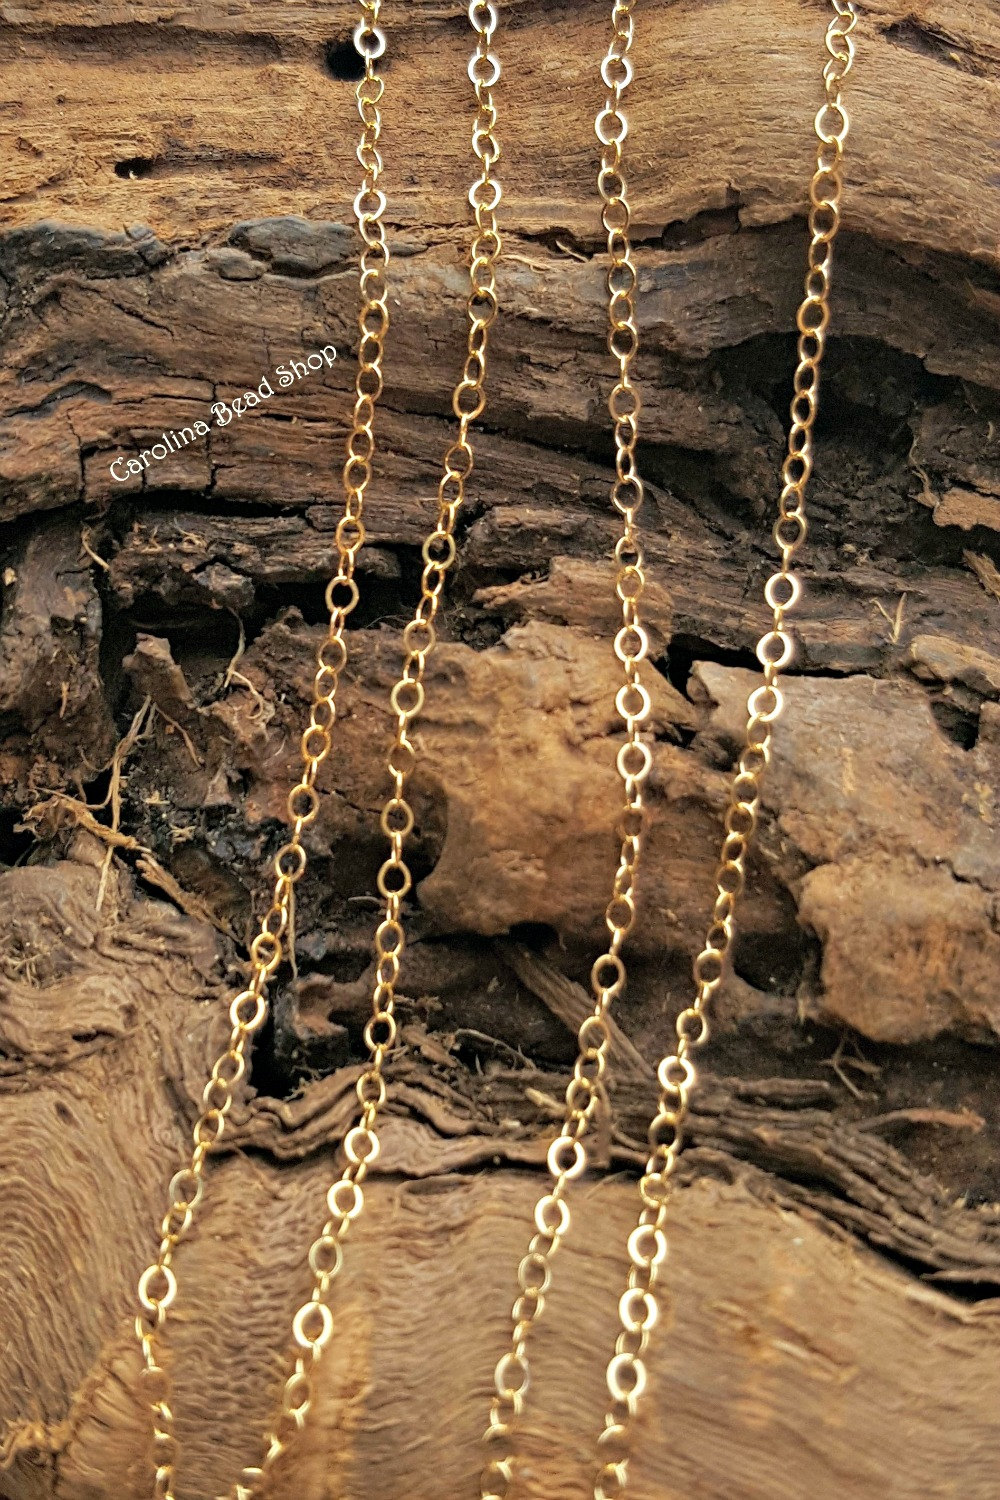 Gold Fill 1.4mm Flat Cable Bulk Chain - 5 10 20 50 100 Ft